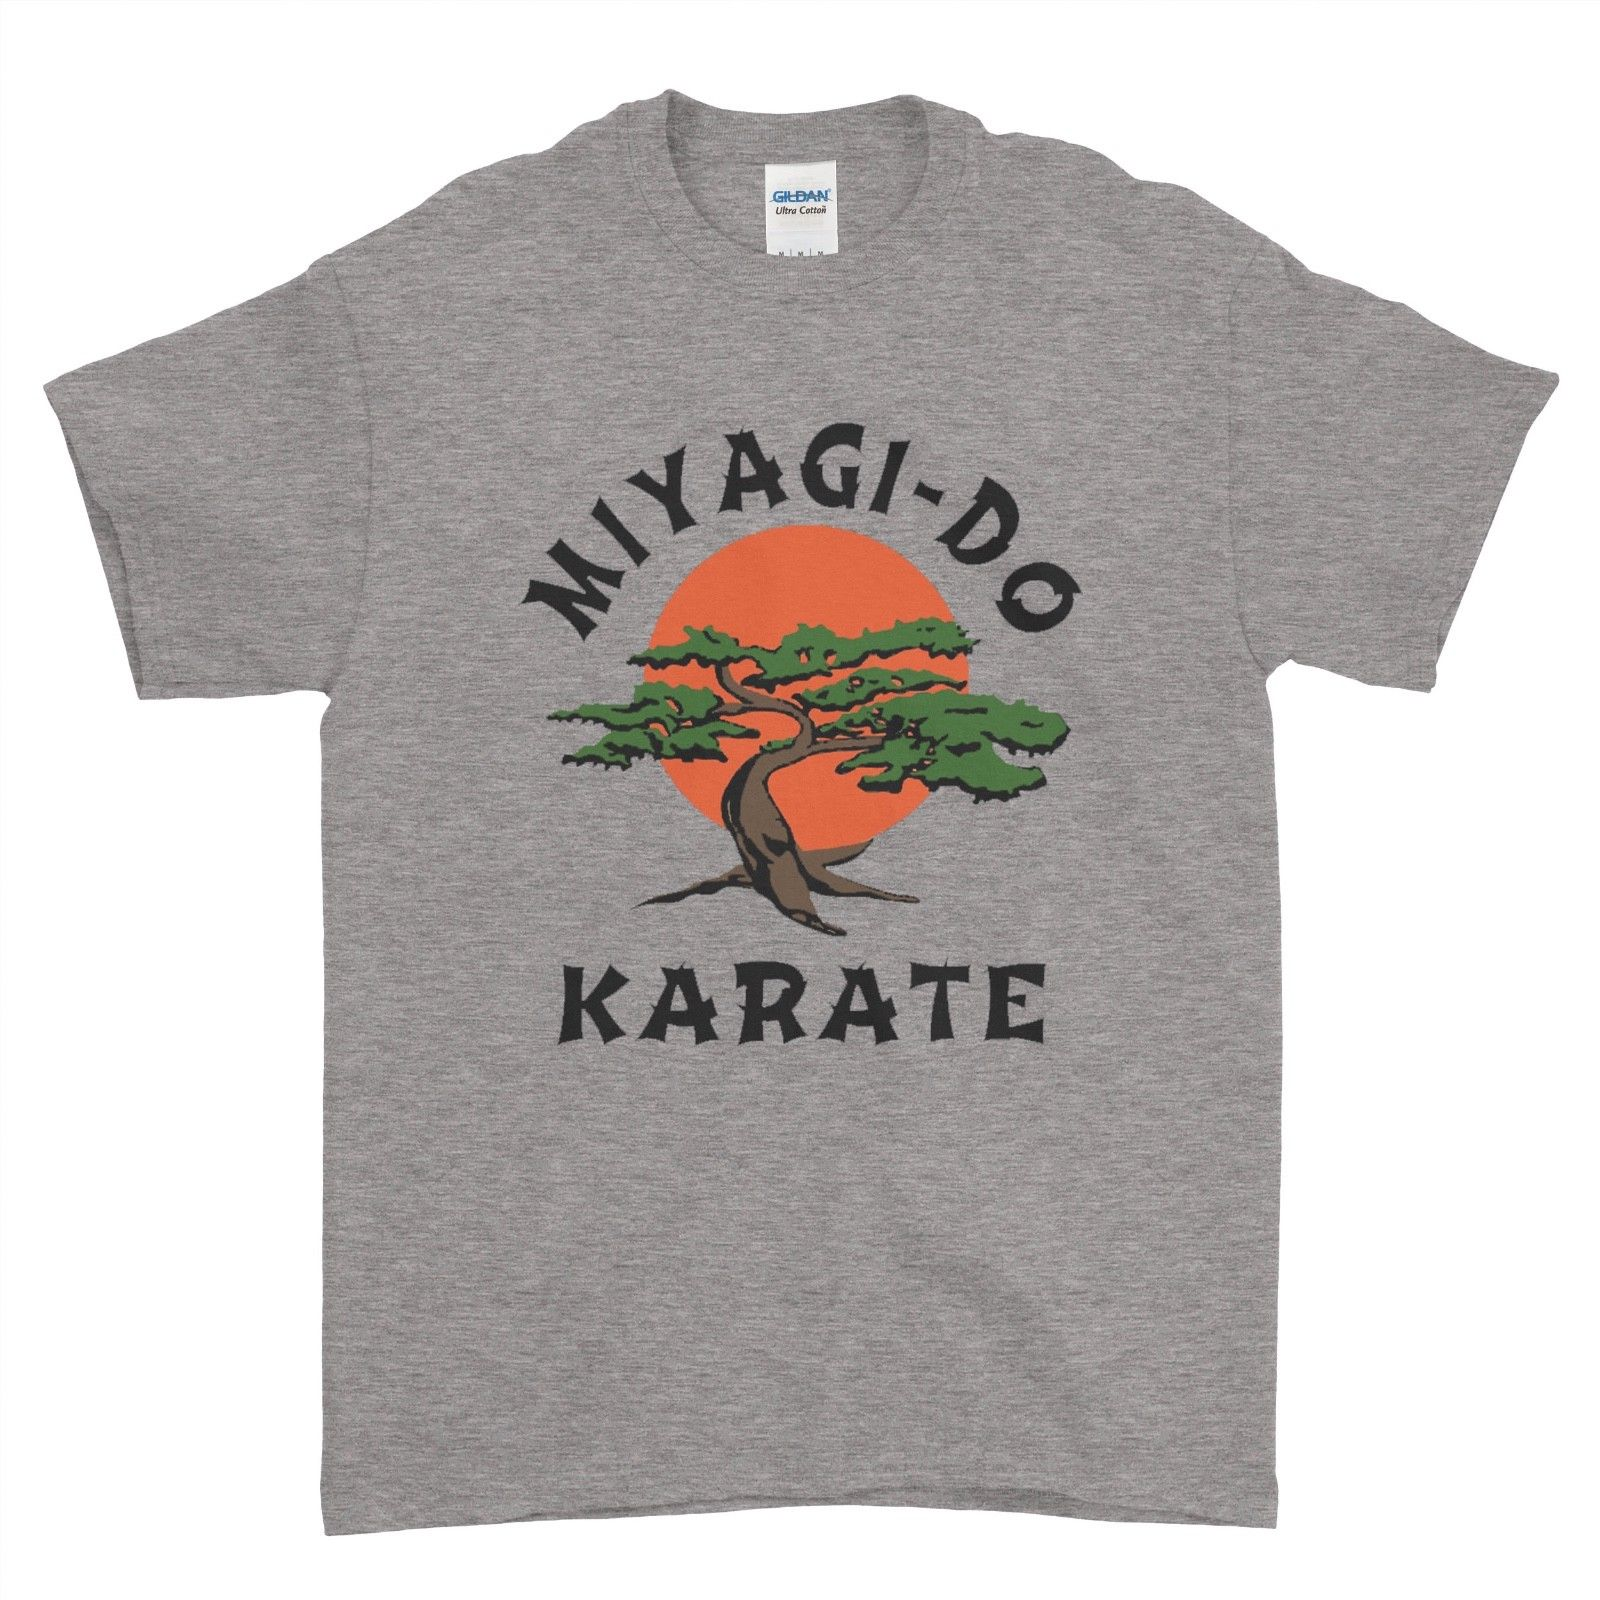 62f0d98a0 Buy the karate kid funny and get free shipping on AliExpress.com